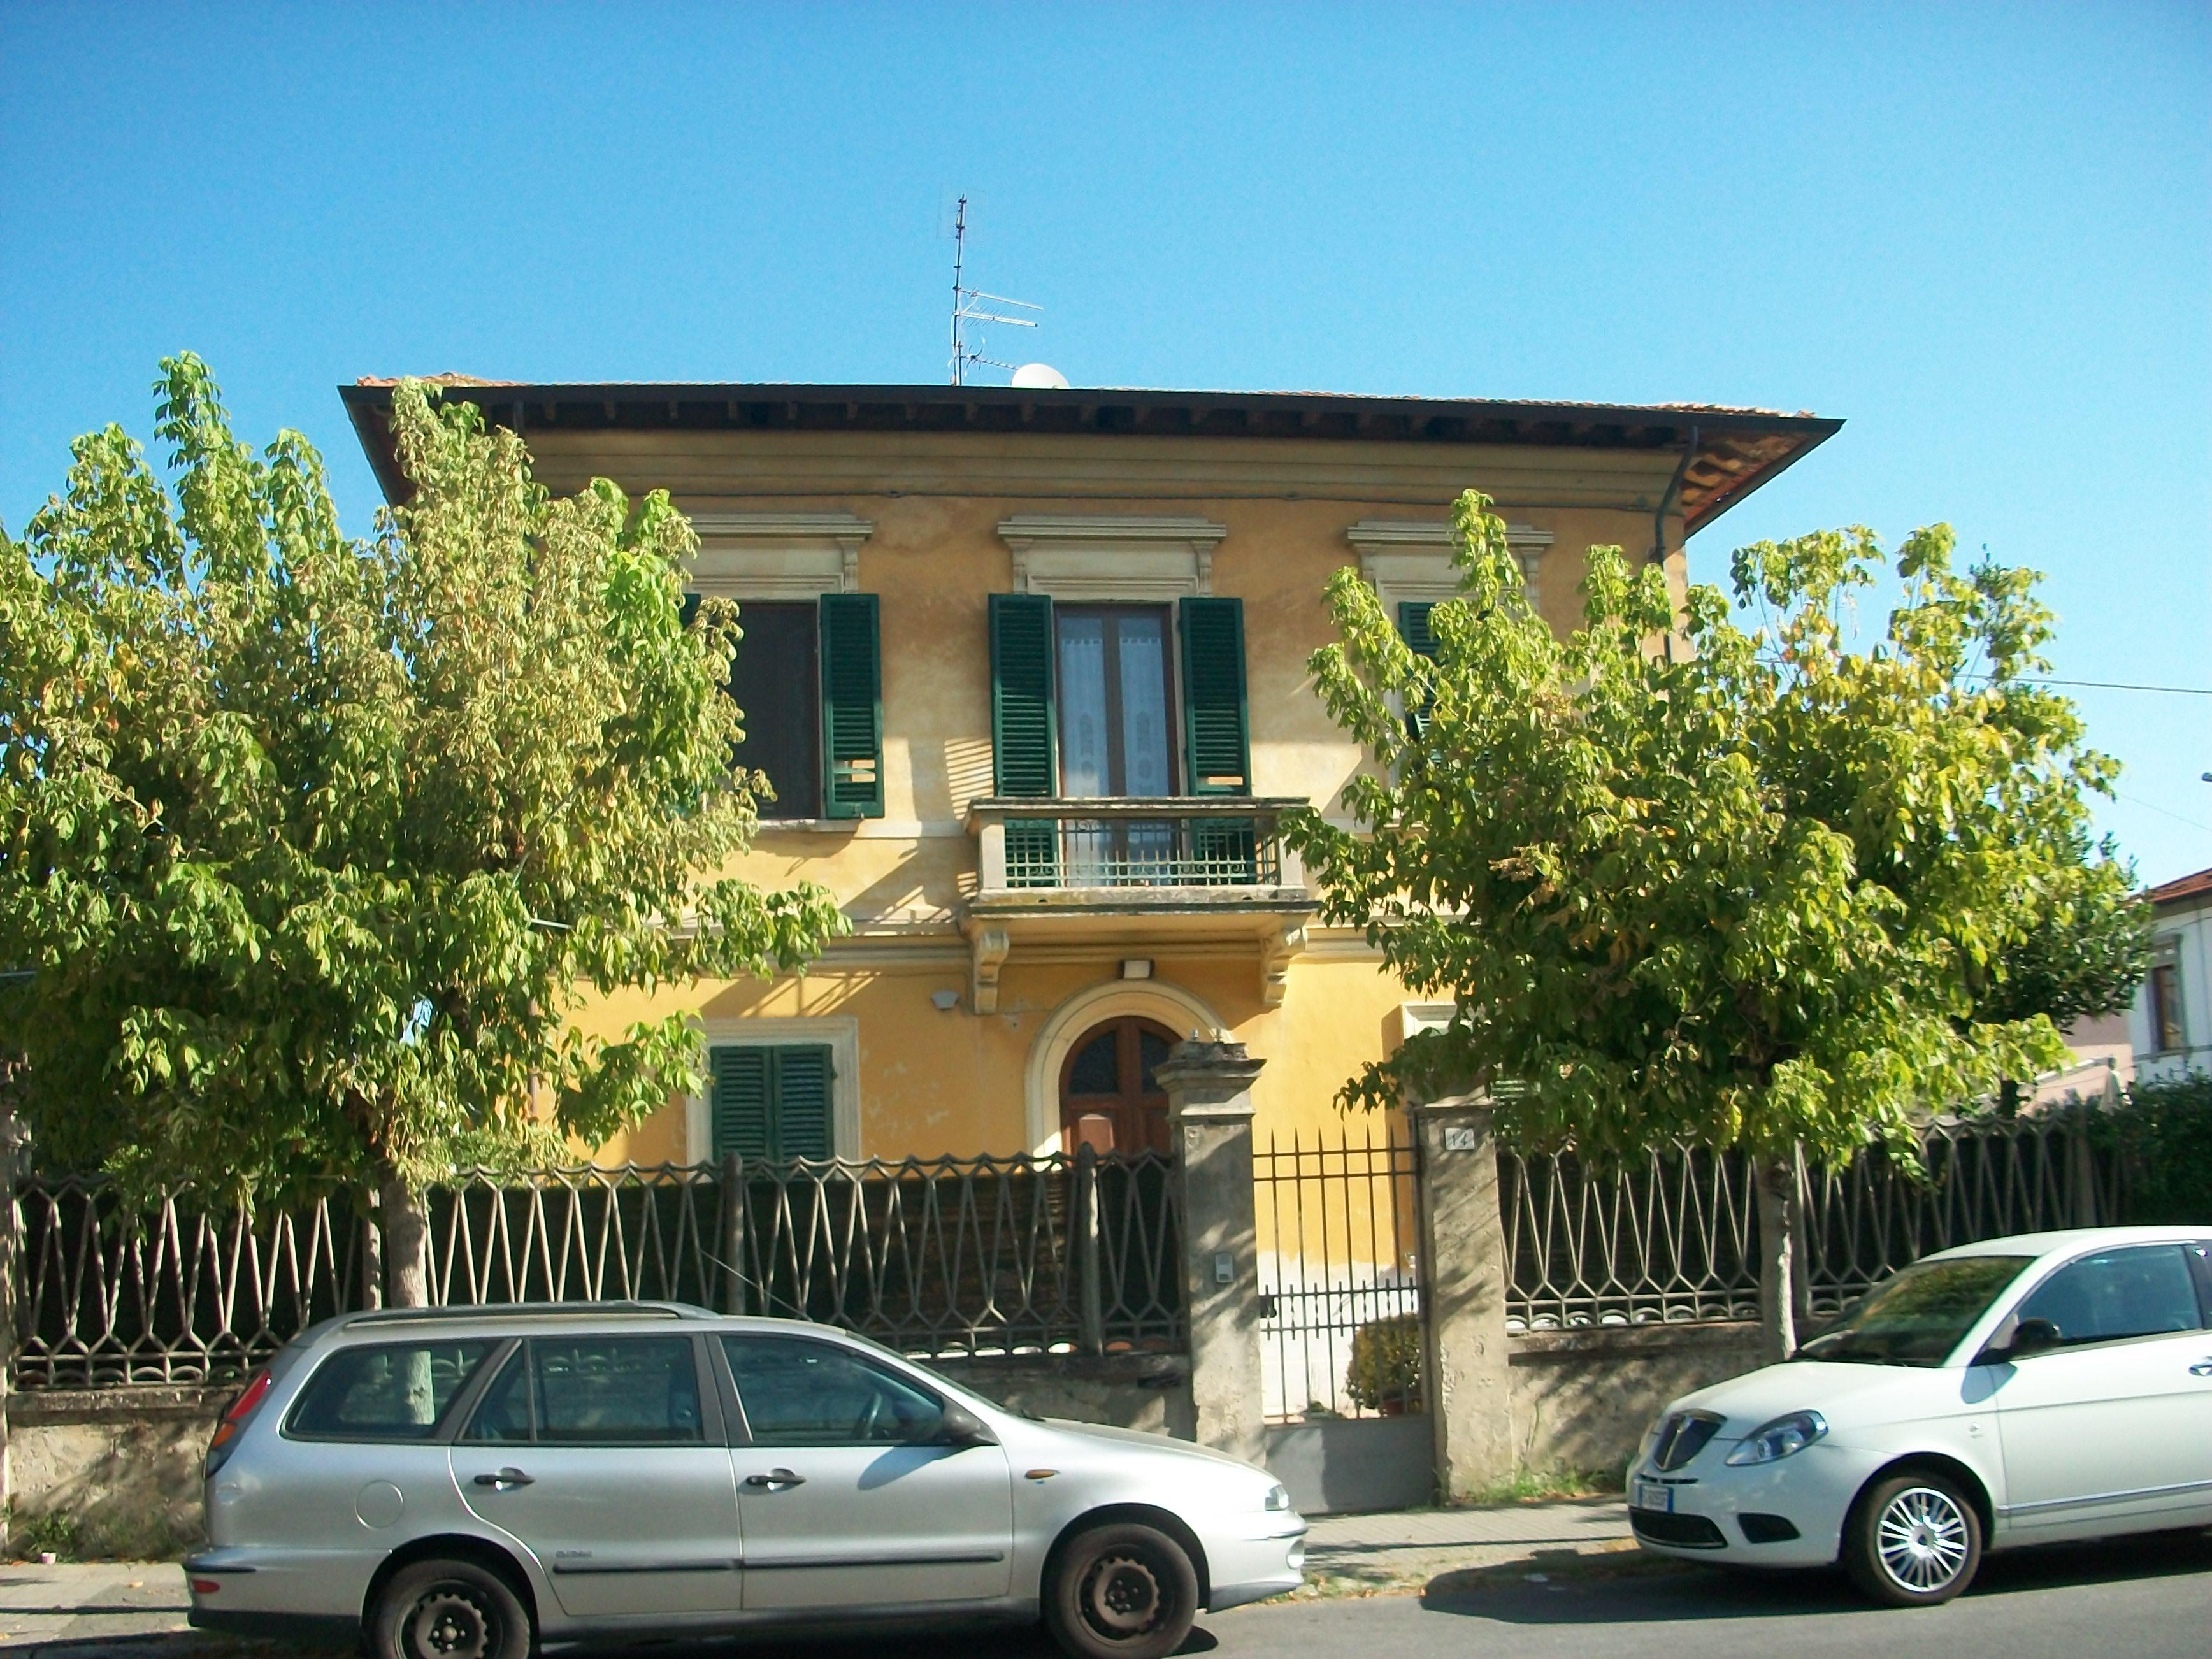 Arcobaleno Bed and Breakfast